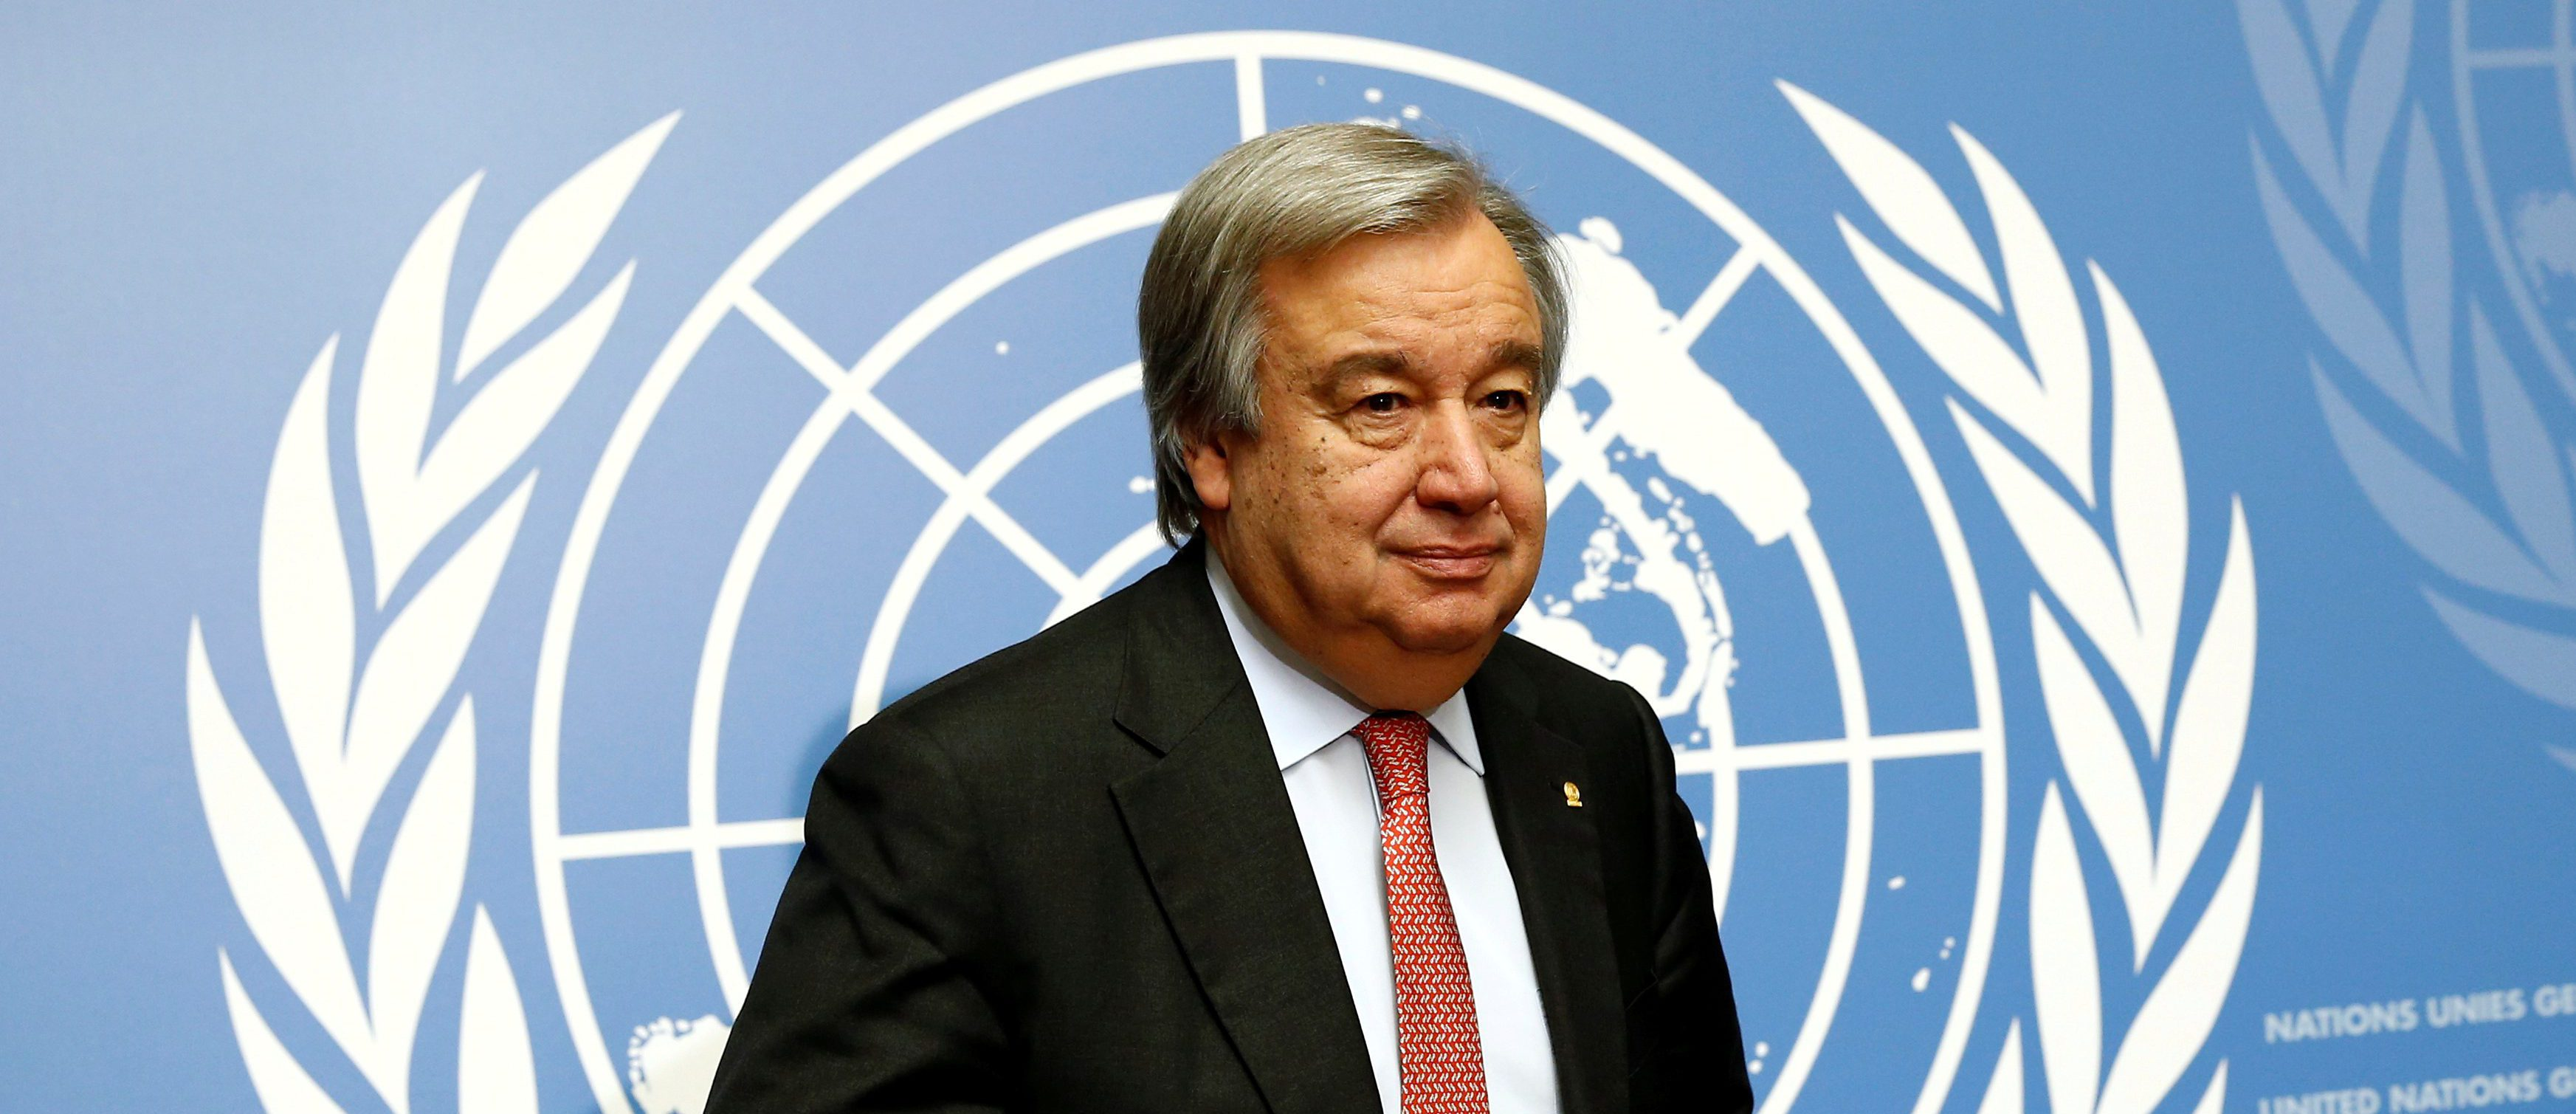 António Guterres: Good for the U.N., good for the world, but gender ...